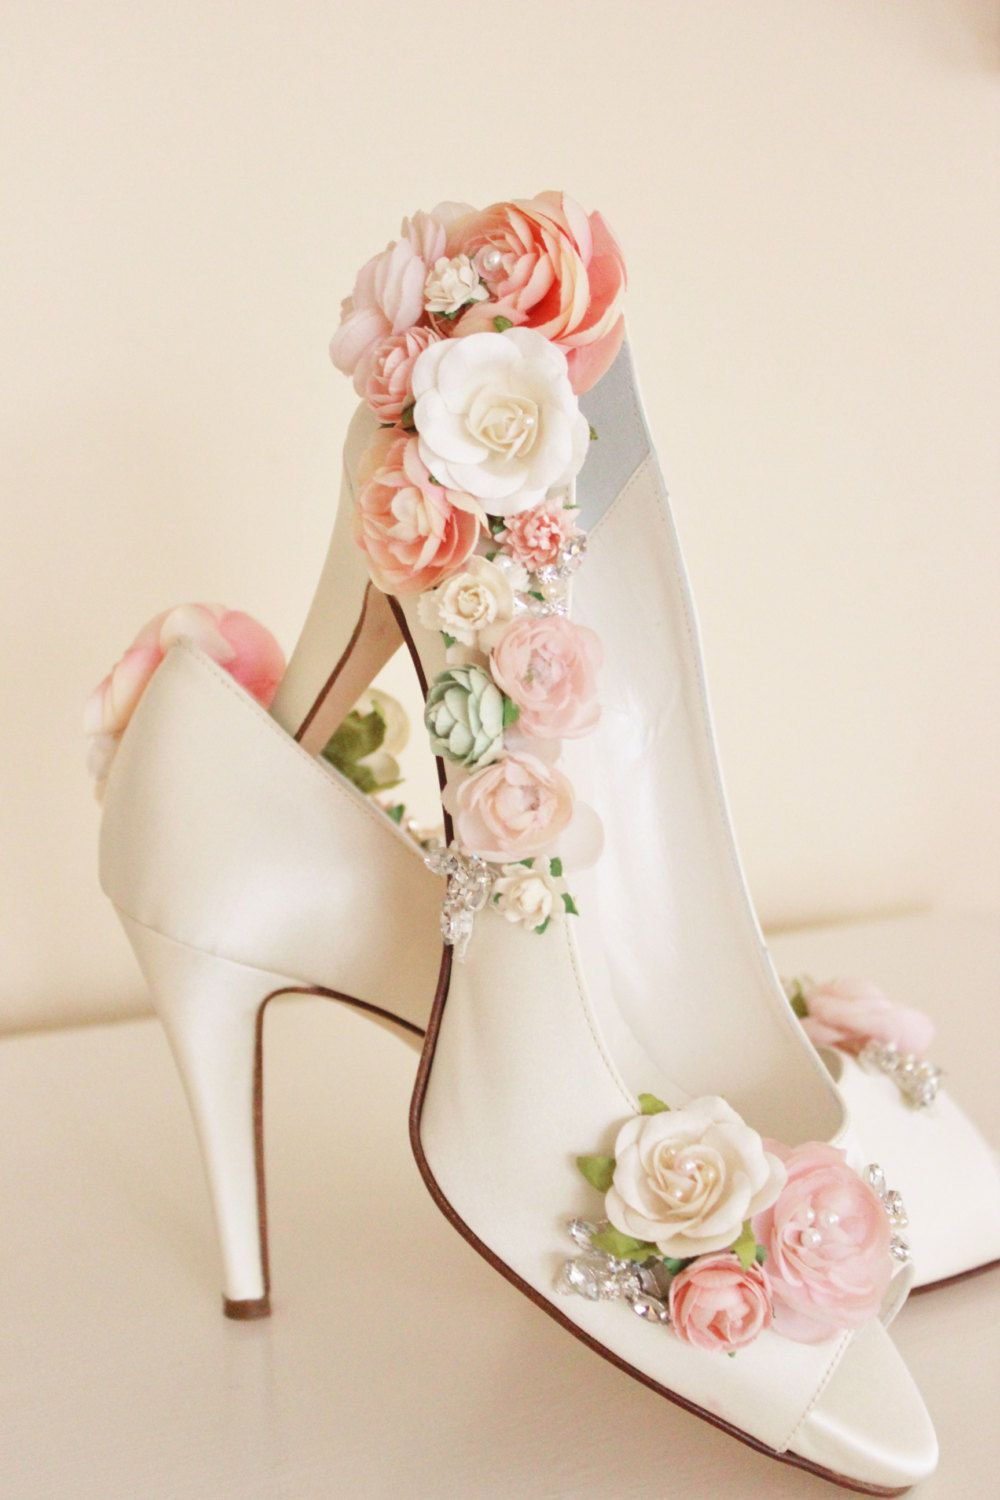 Whimsical Woodland Blush Flower Bridal Shoes by